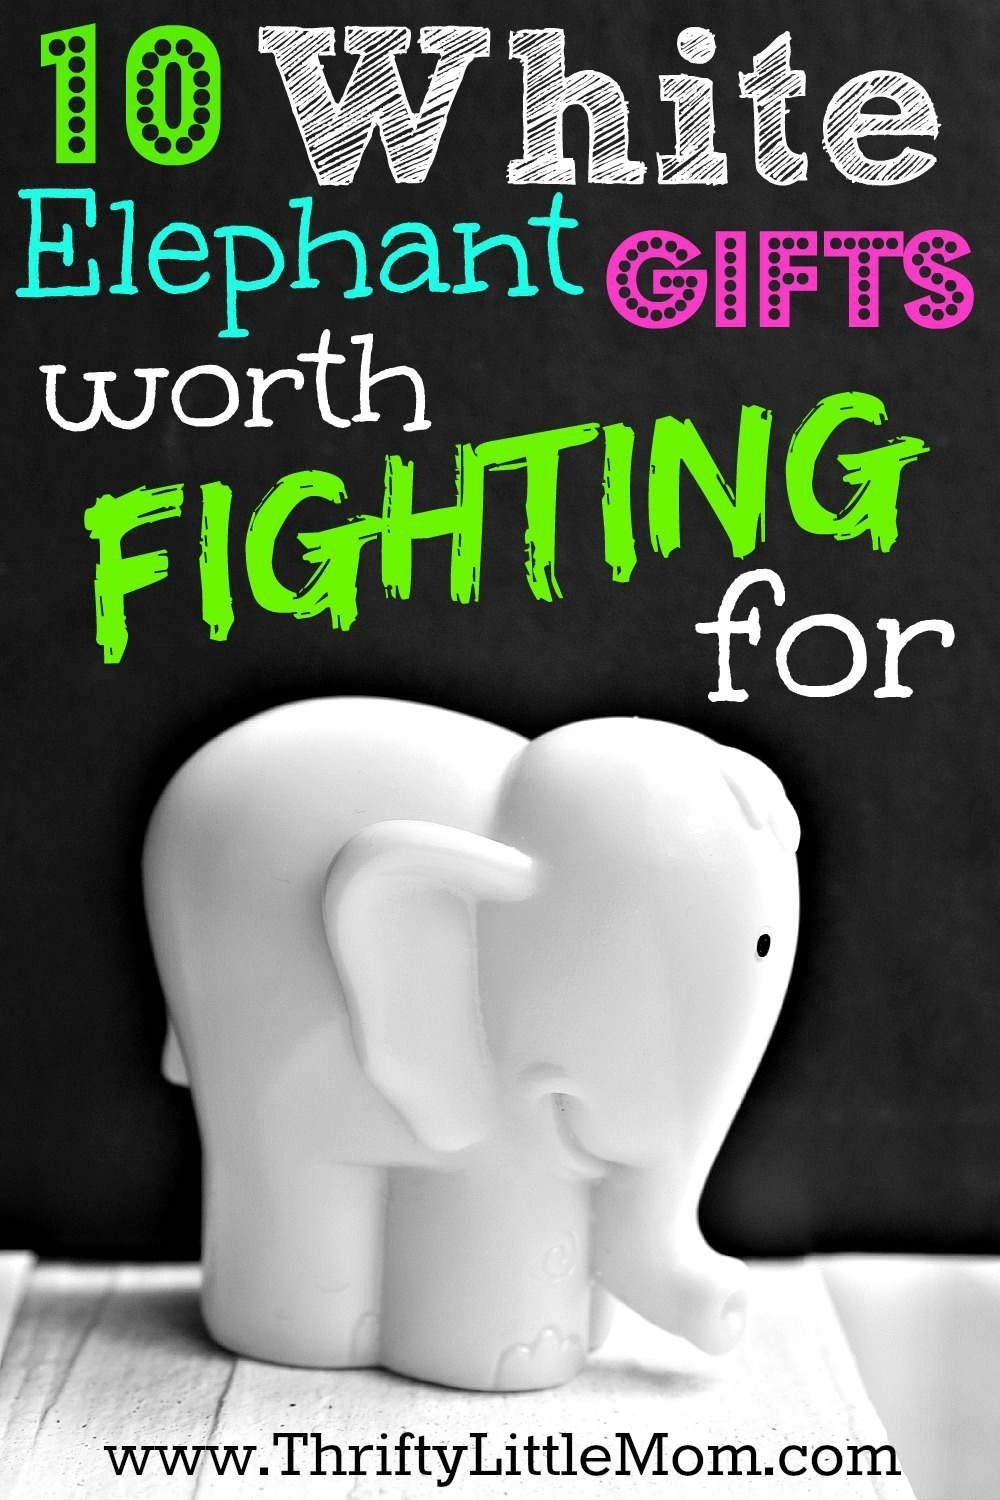 white elephant gifts worth fighting for | yankee swap ideas, white